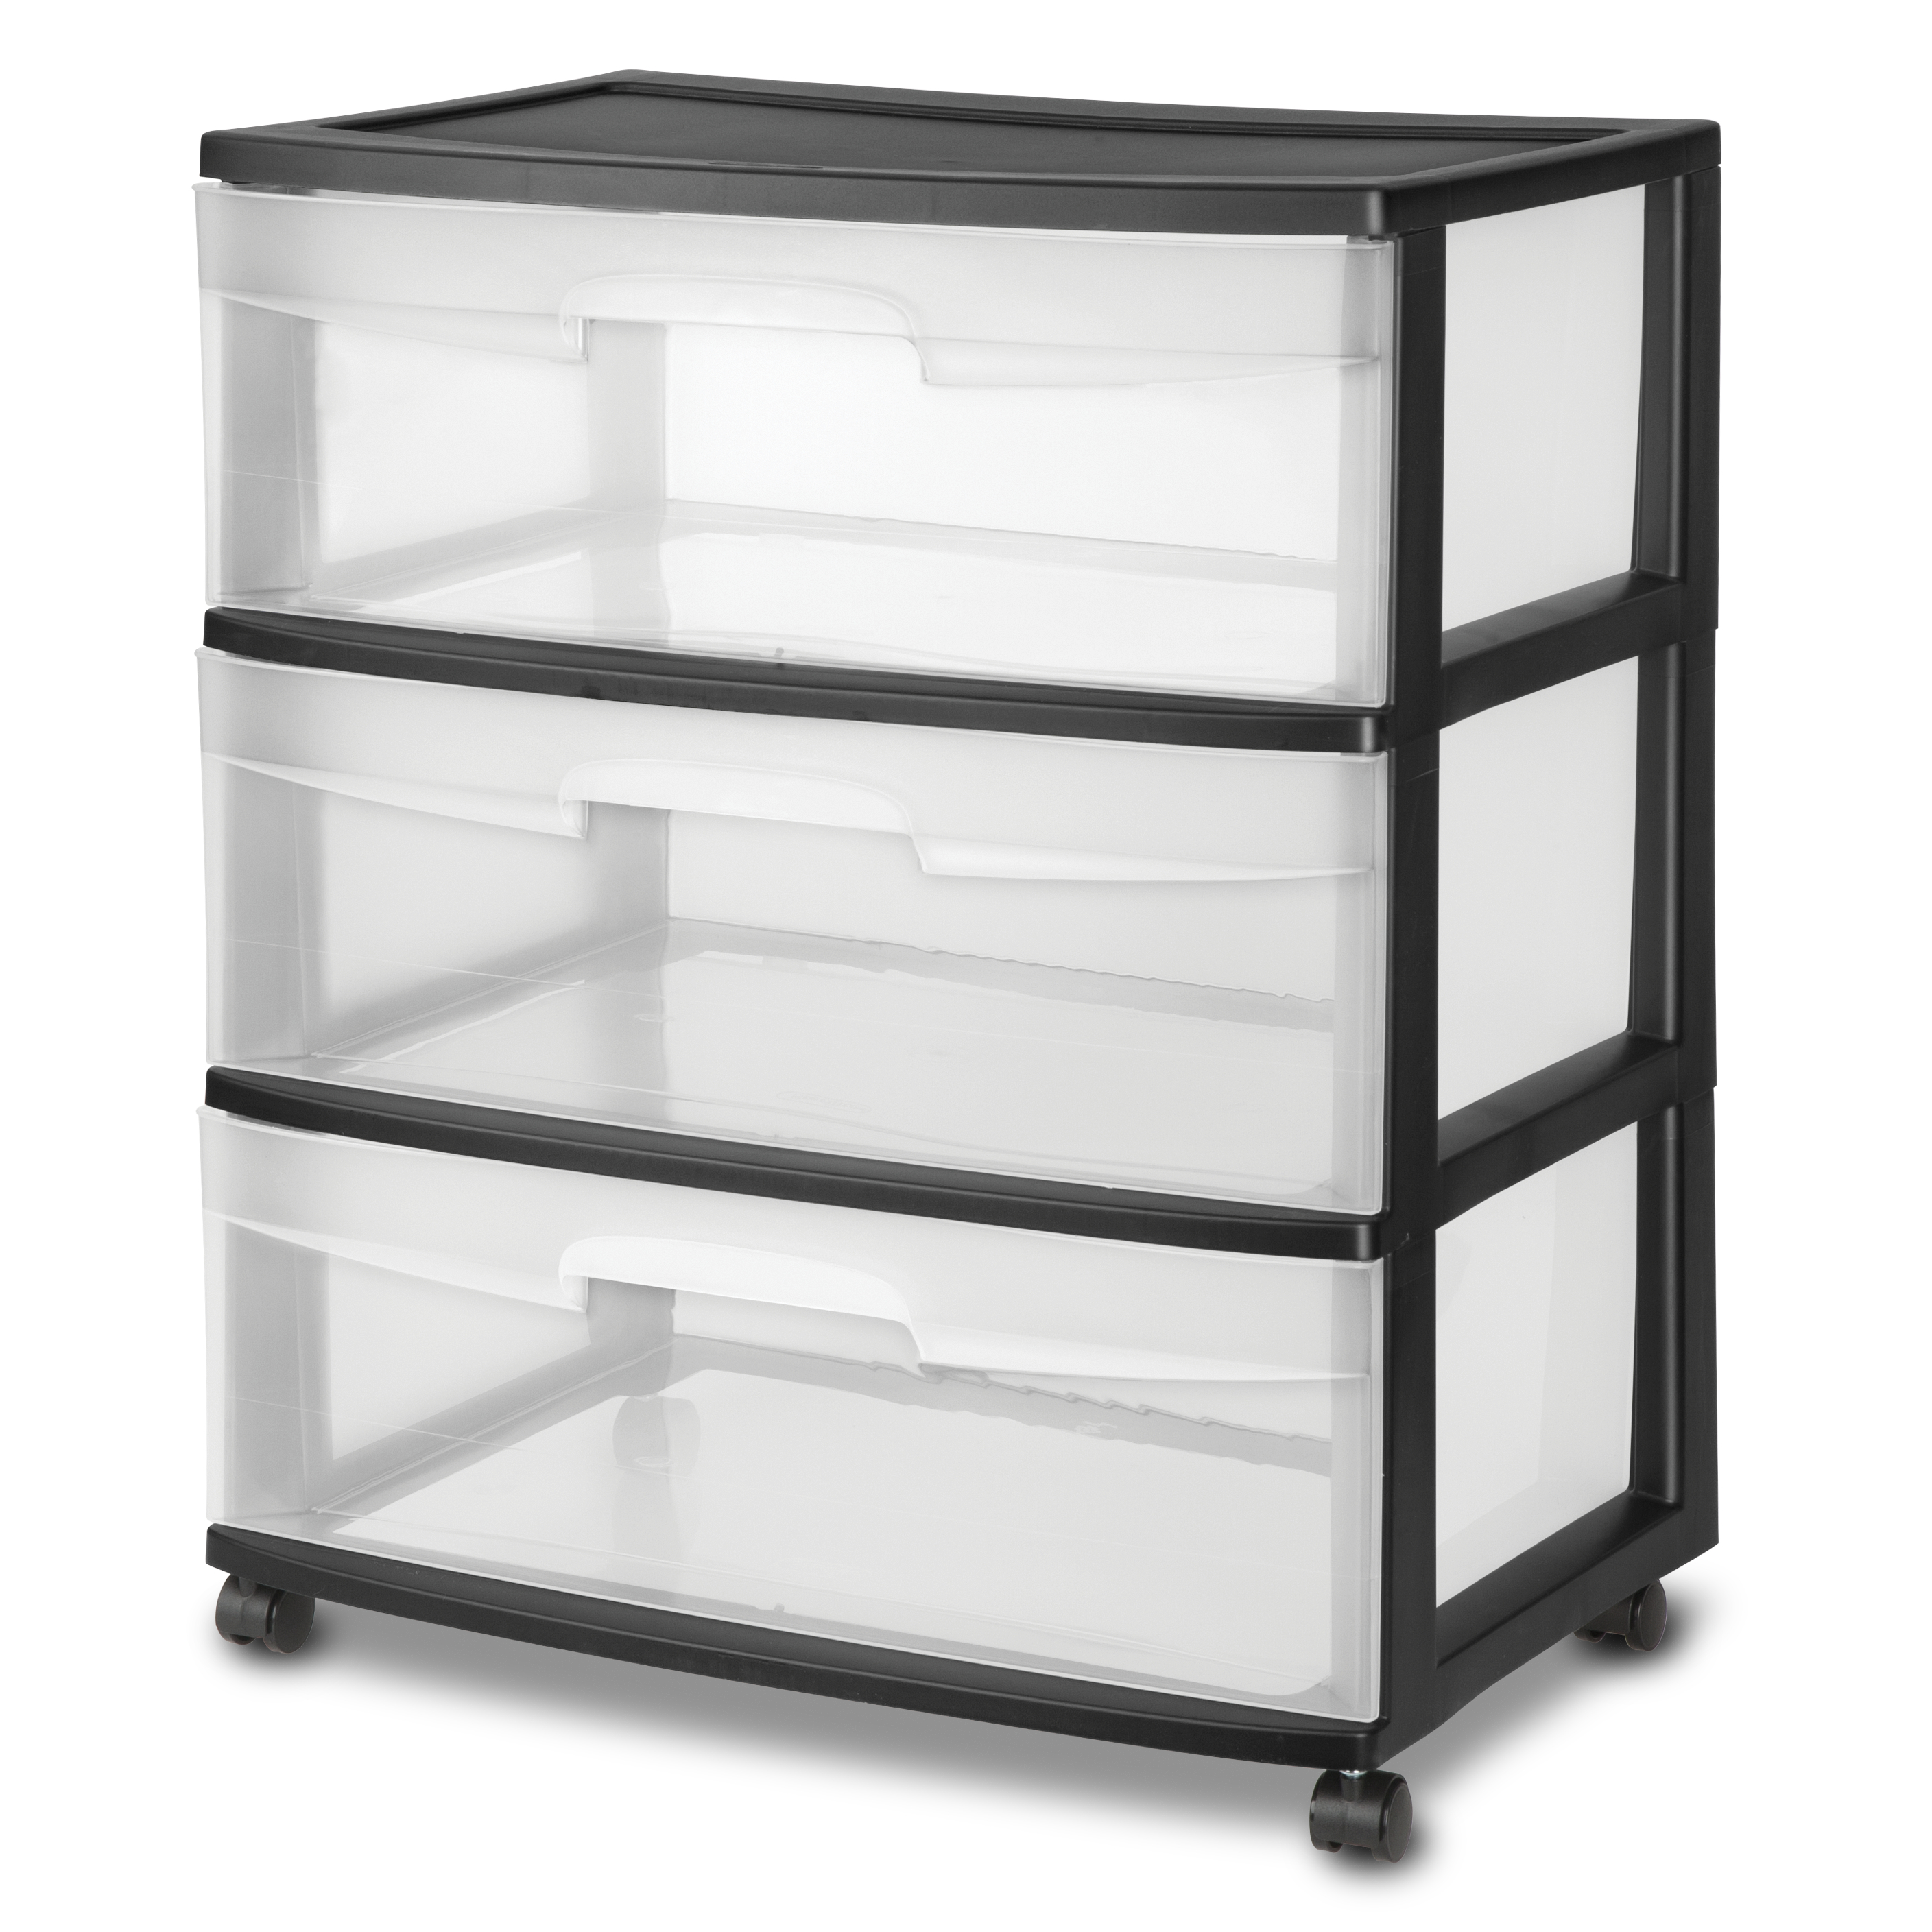 Sterilite Wide 3 Drawer Cart, Black